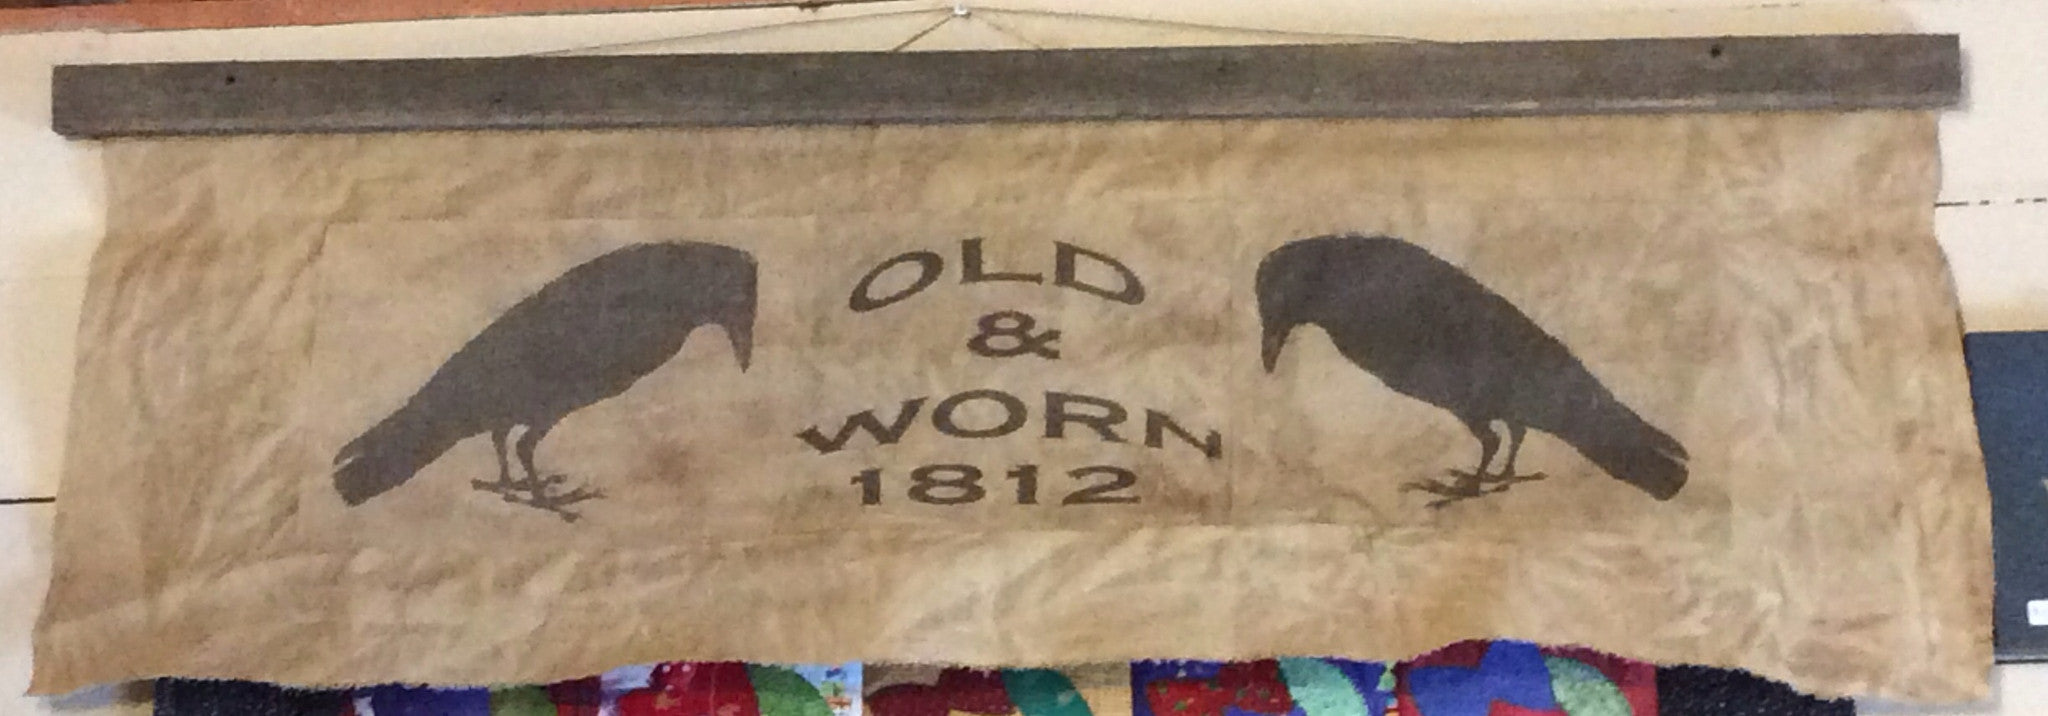 Old and Worn 1812 Wall Hanging